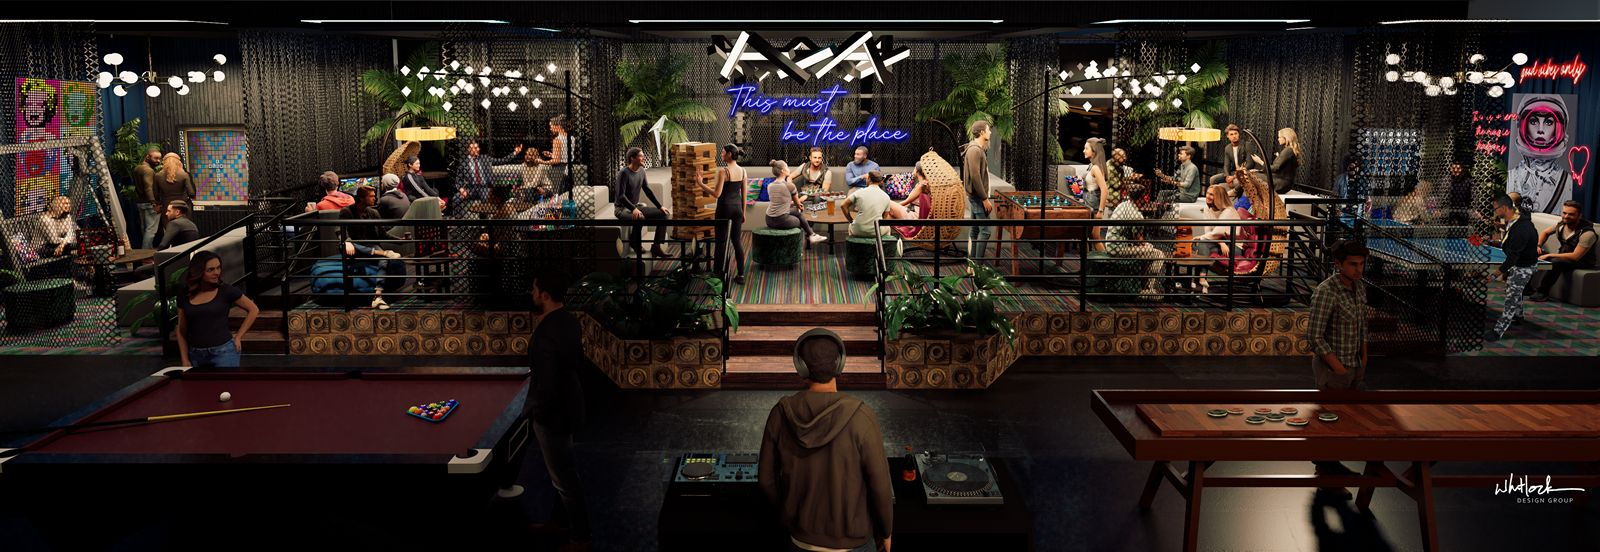 """Team of Seasoned """"Eatertainment"""" Pros to Launch Innovative Experiential Dining Brand Post-COVID"""